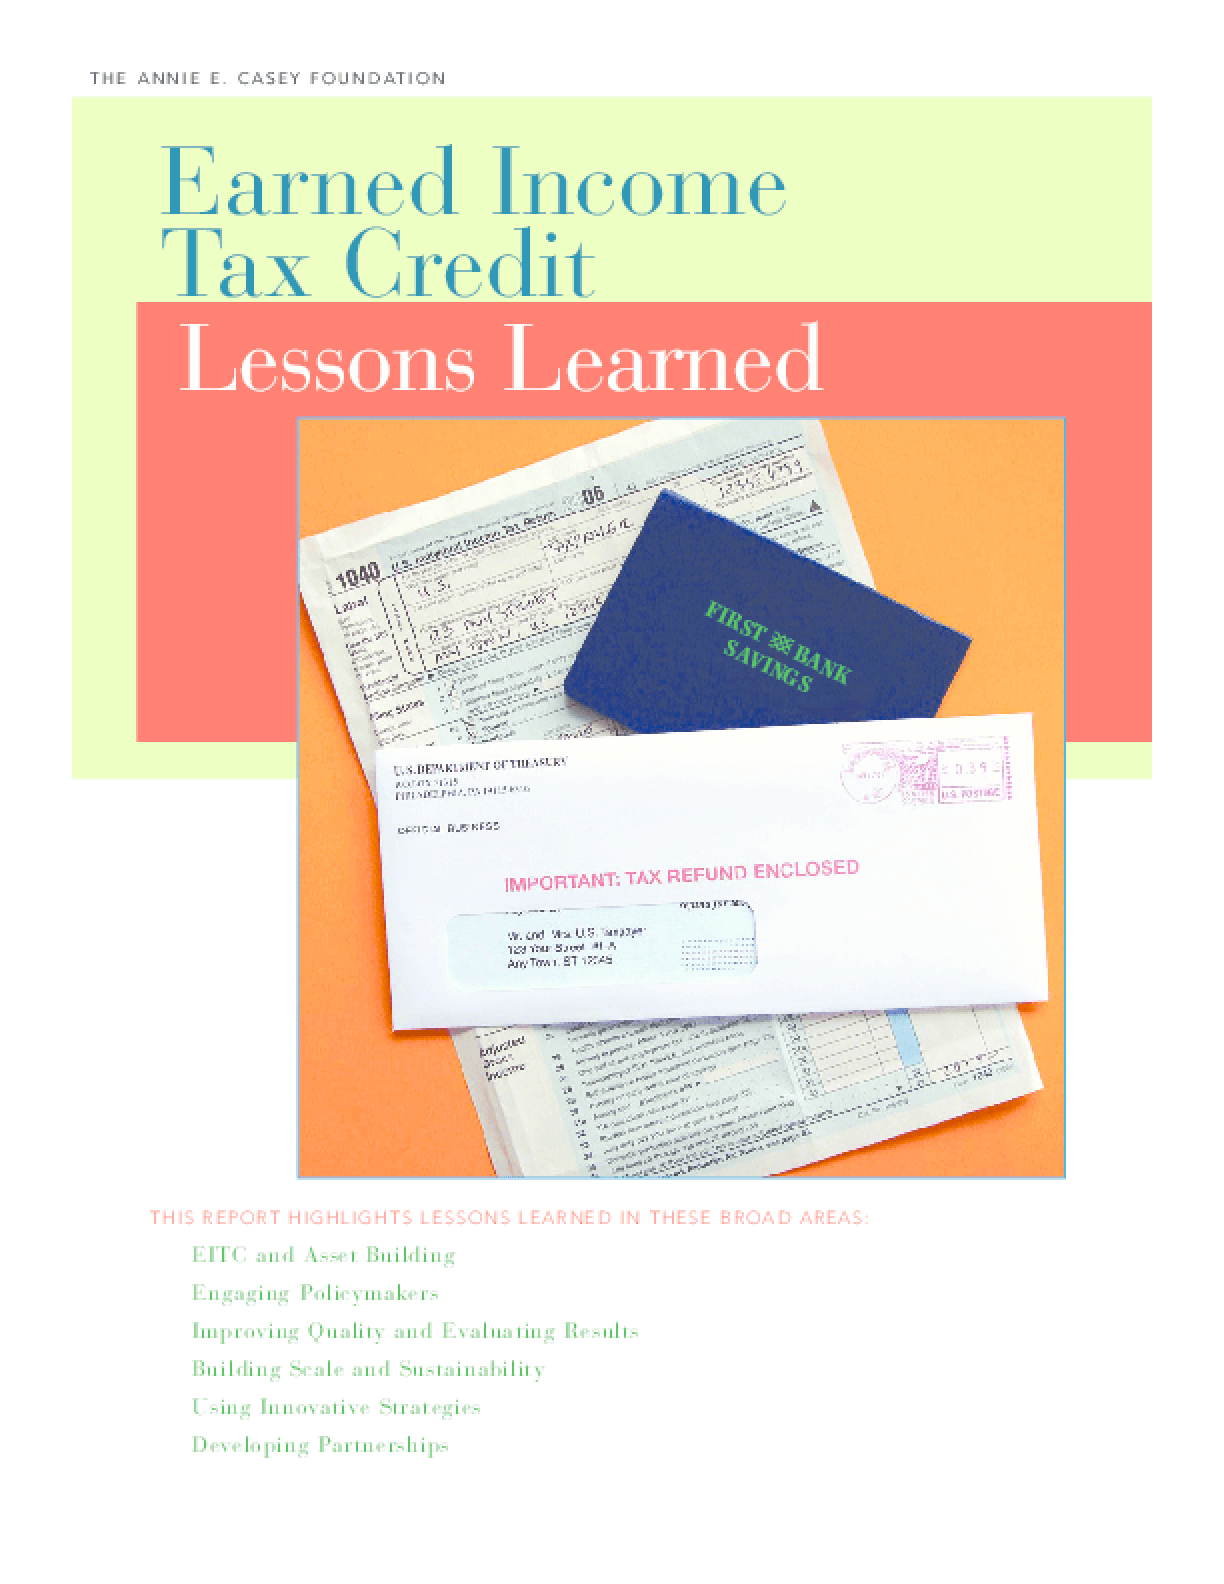 Earned Income Tax Credit: Lessons Learned